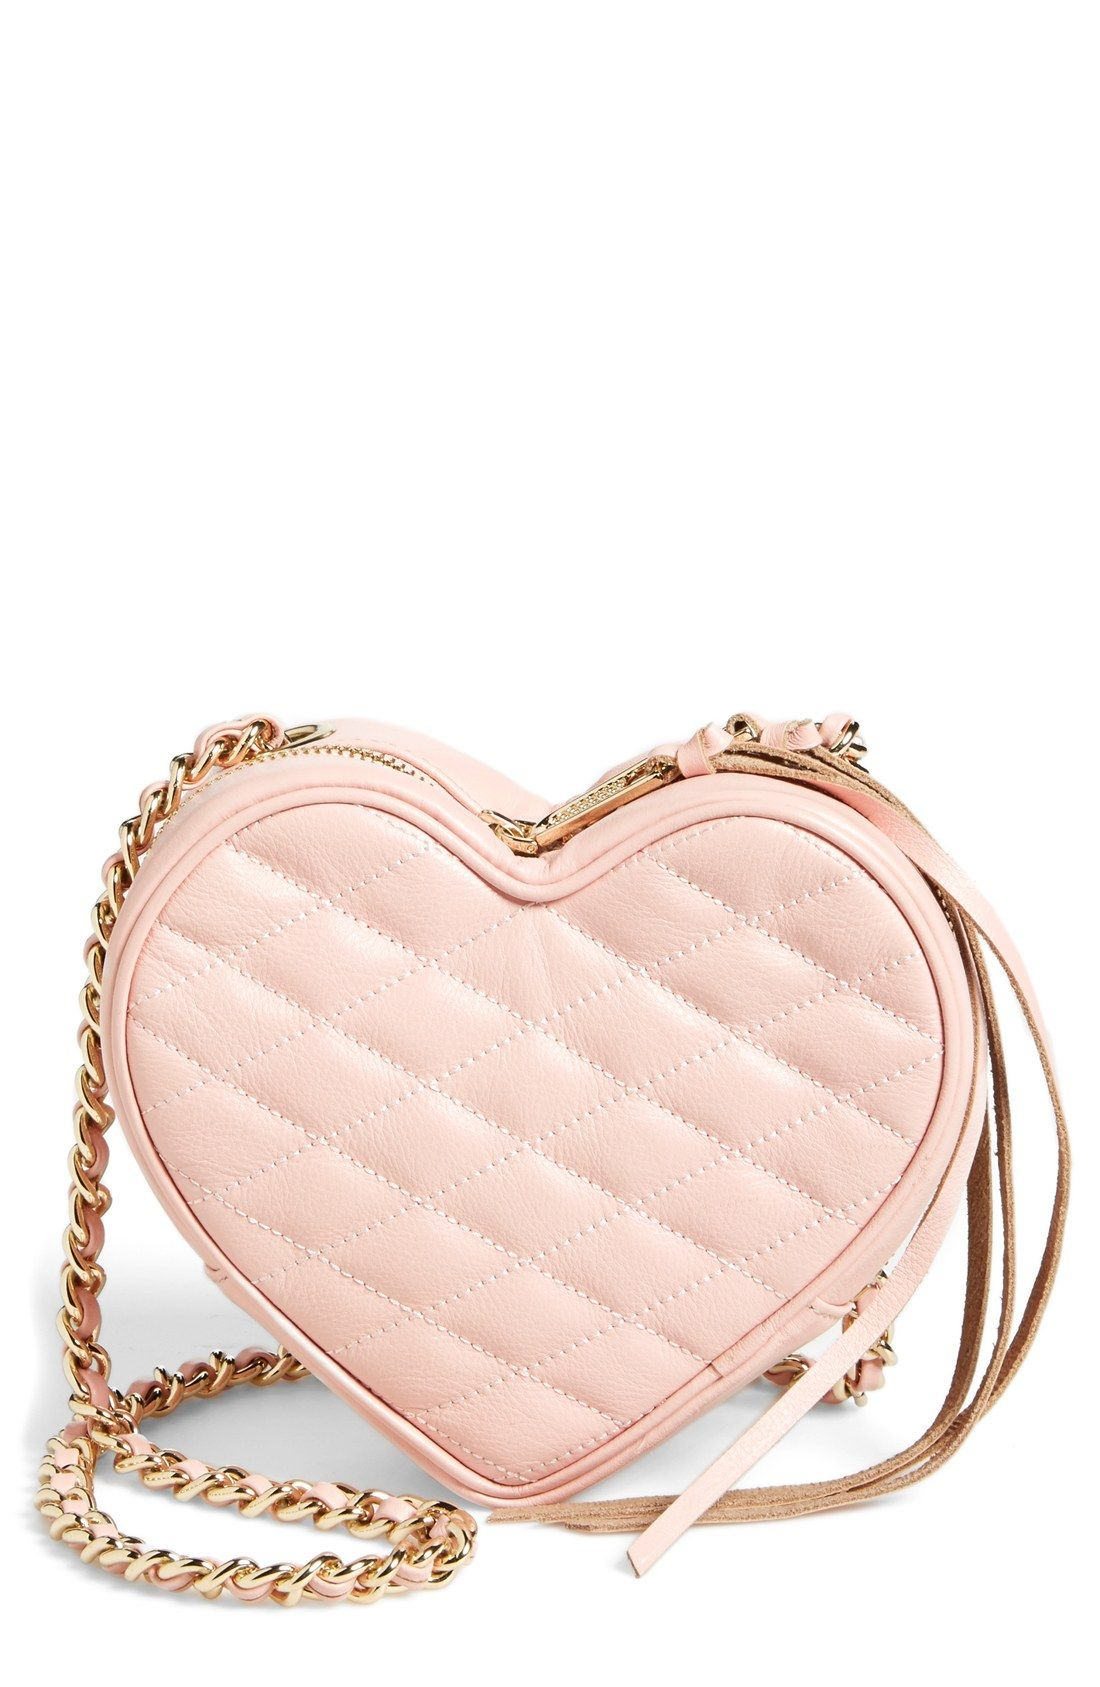 This Pink Quilted Heart Shaped Crossbody Is So Pretty